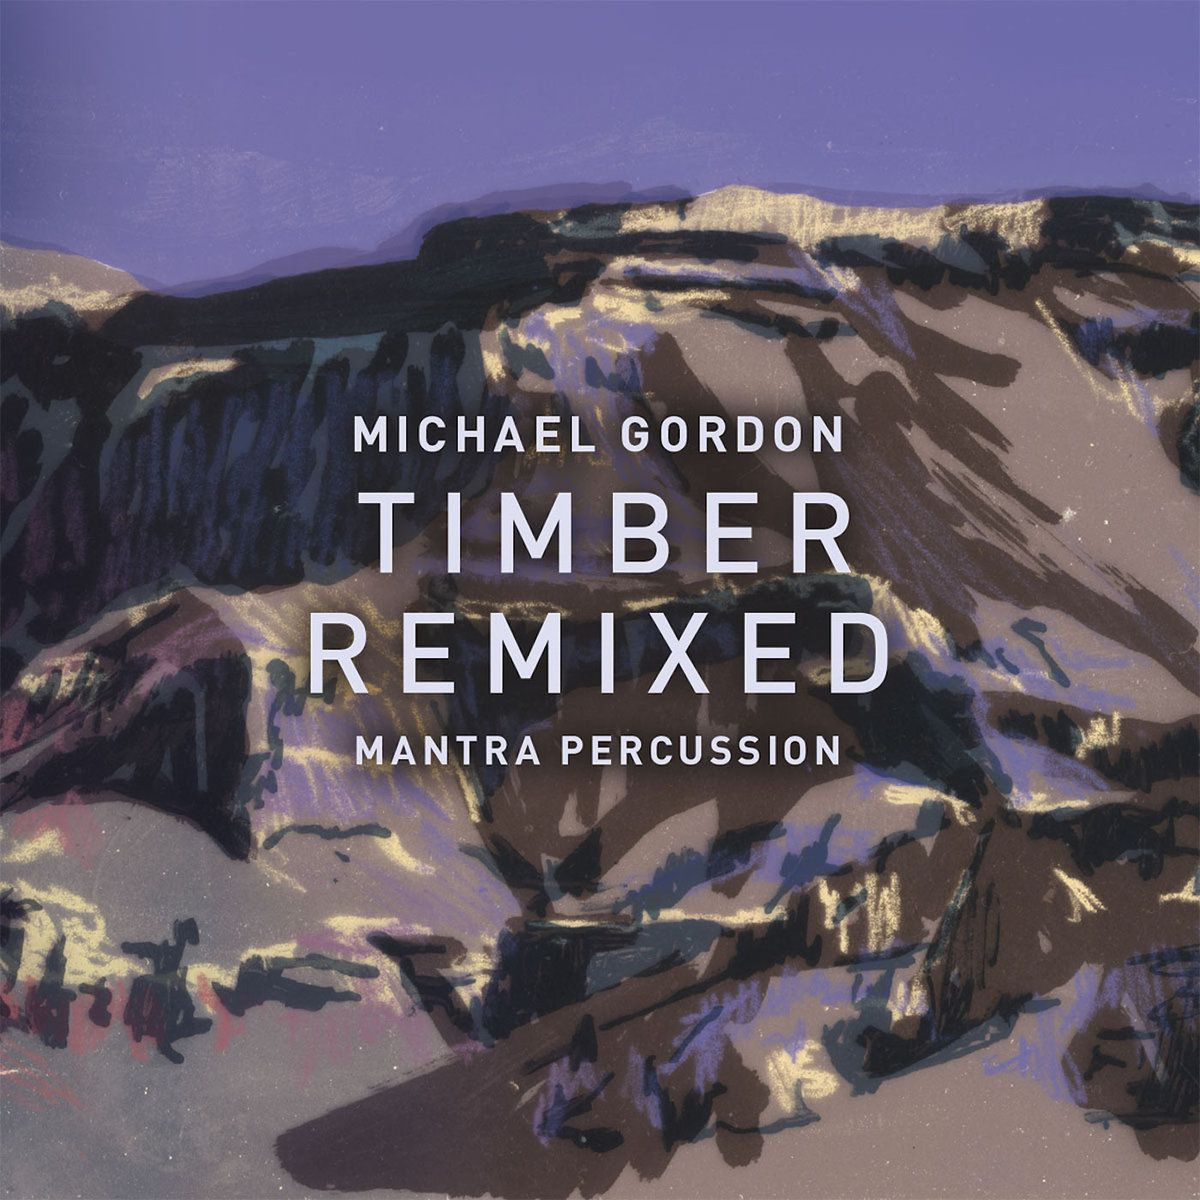 Michael Gordon - Timber remixed